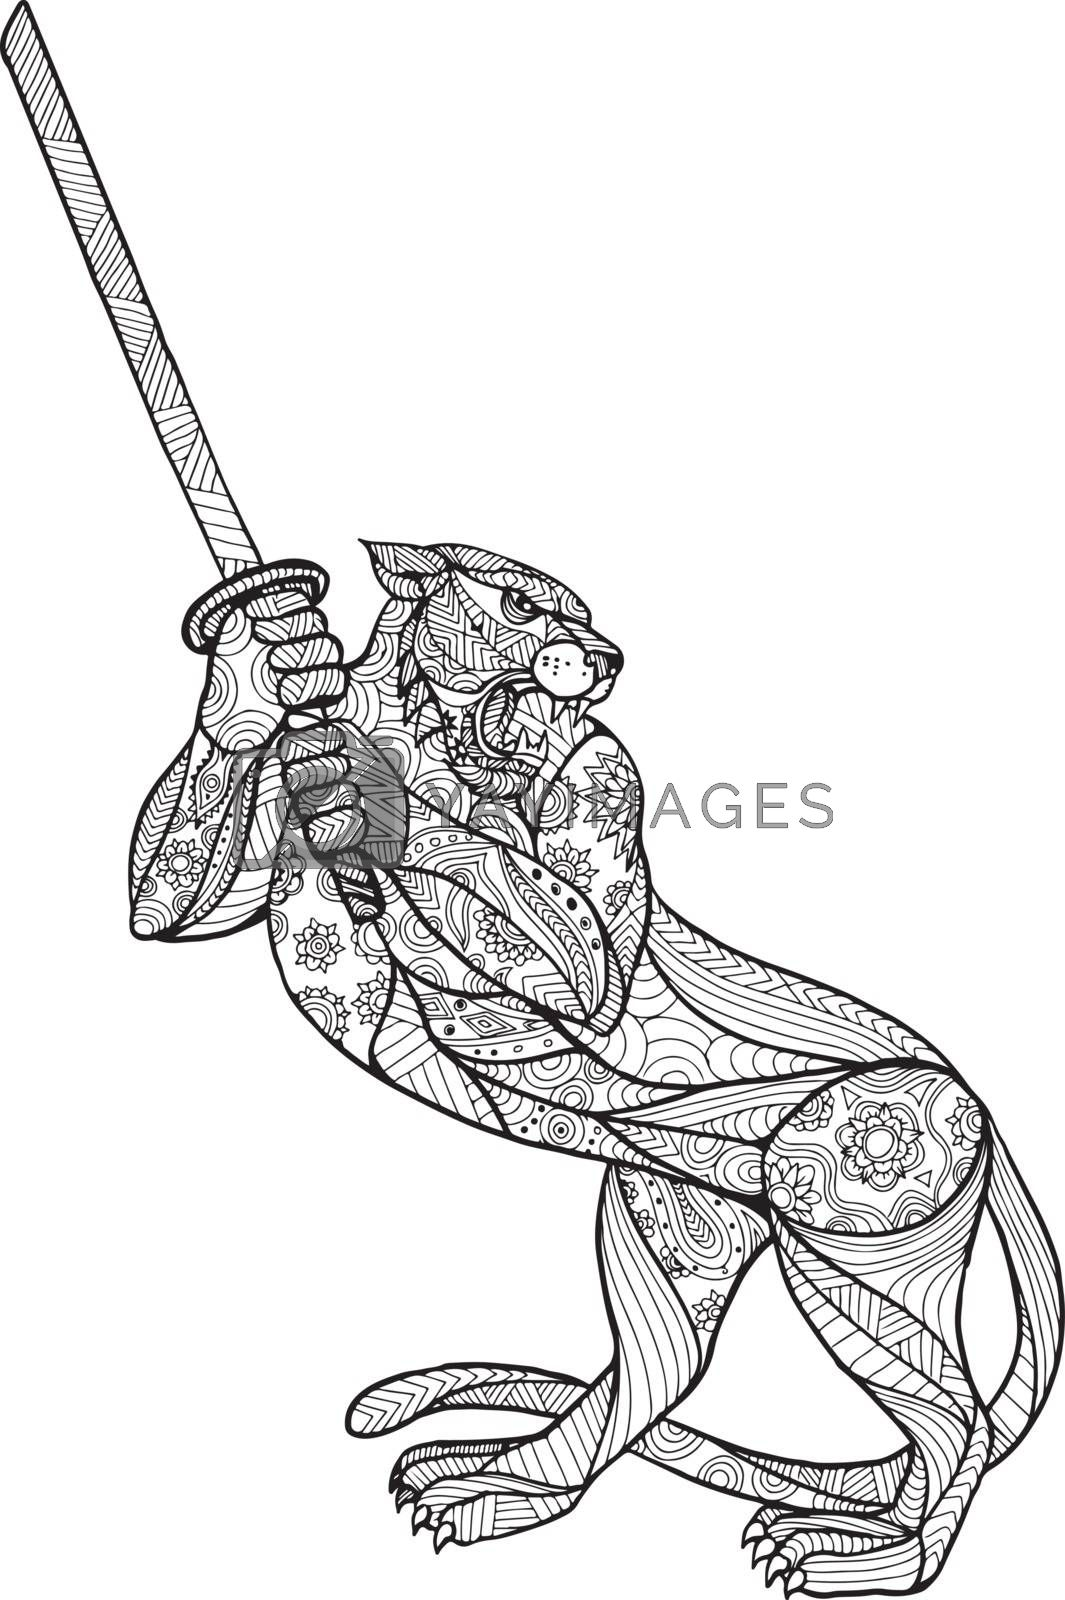 Mandala style illustration of a tiger brandishing katana sword in fighting stance on isolated backgound done in black and white.